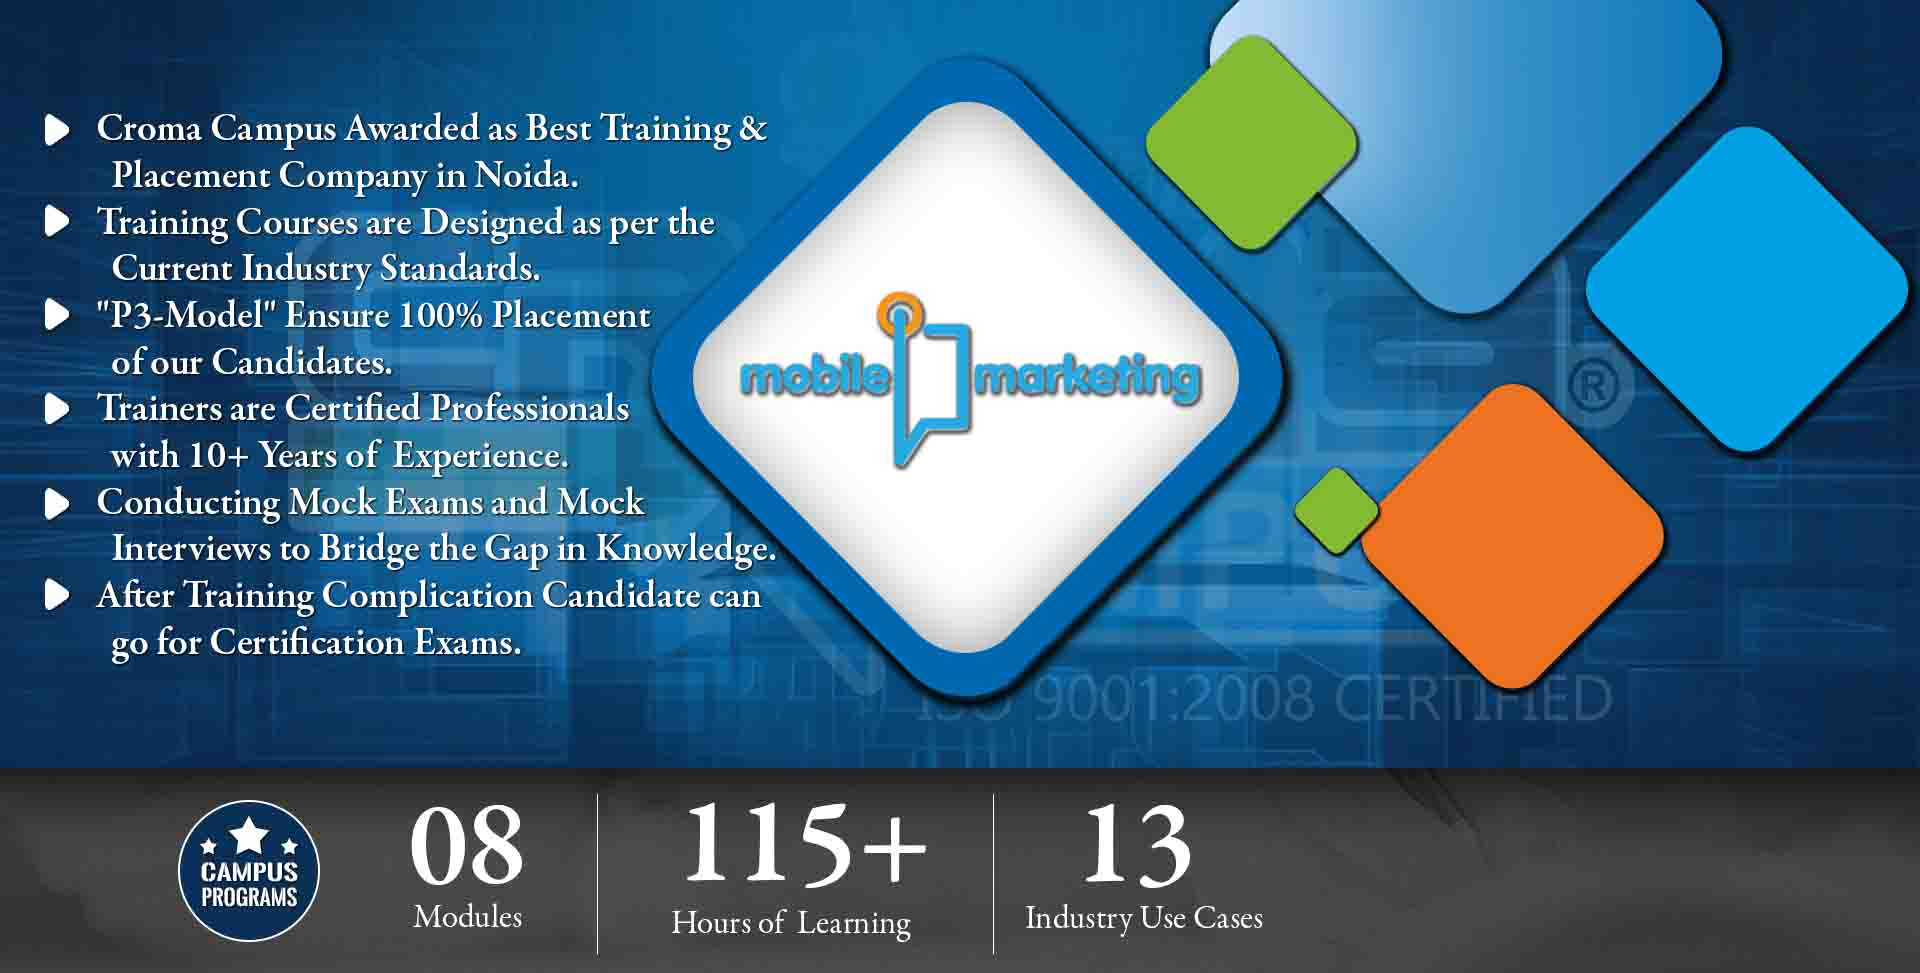 Mobile Marketing Training in Gurgaon- Croma Campus